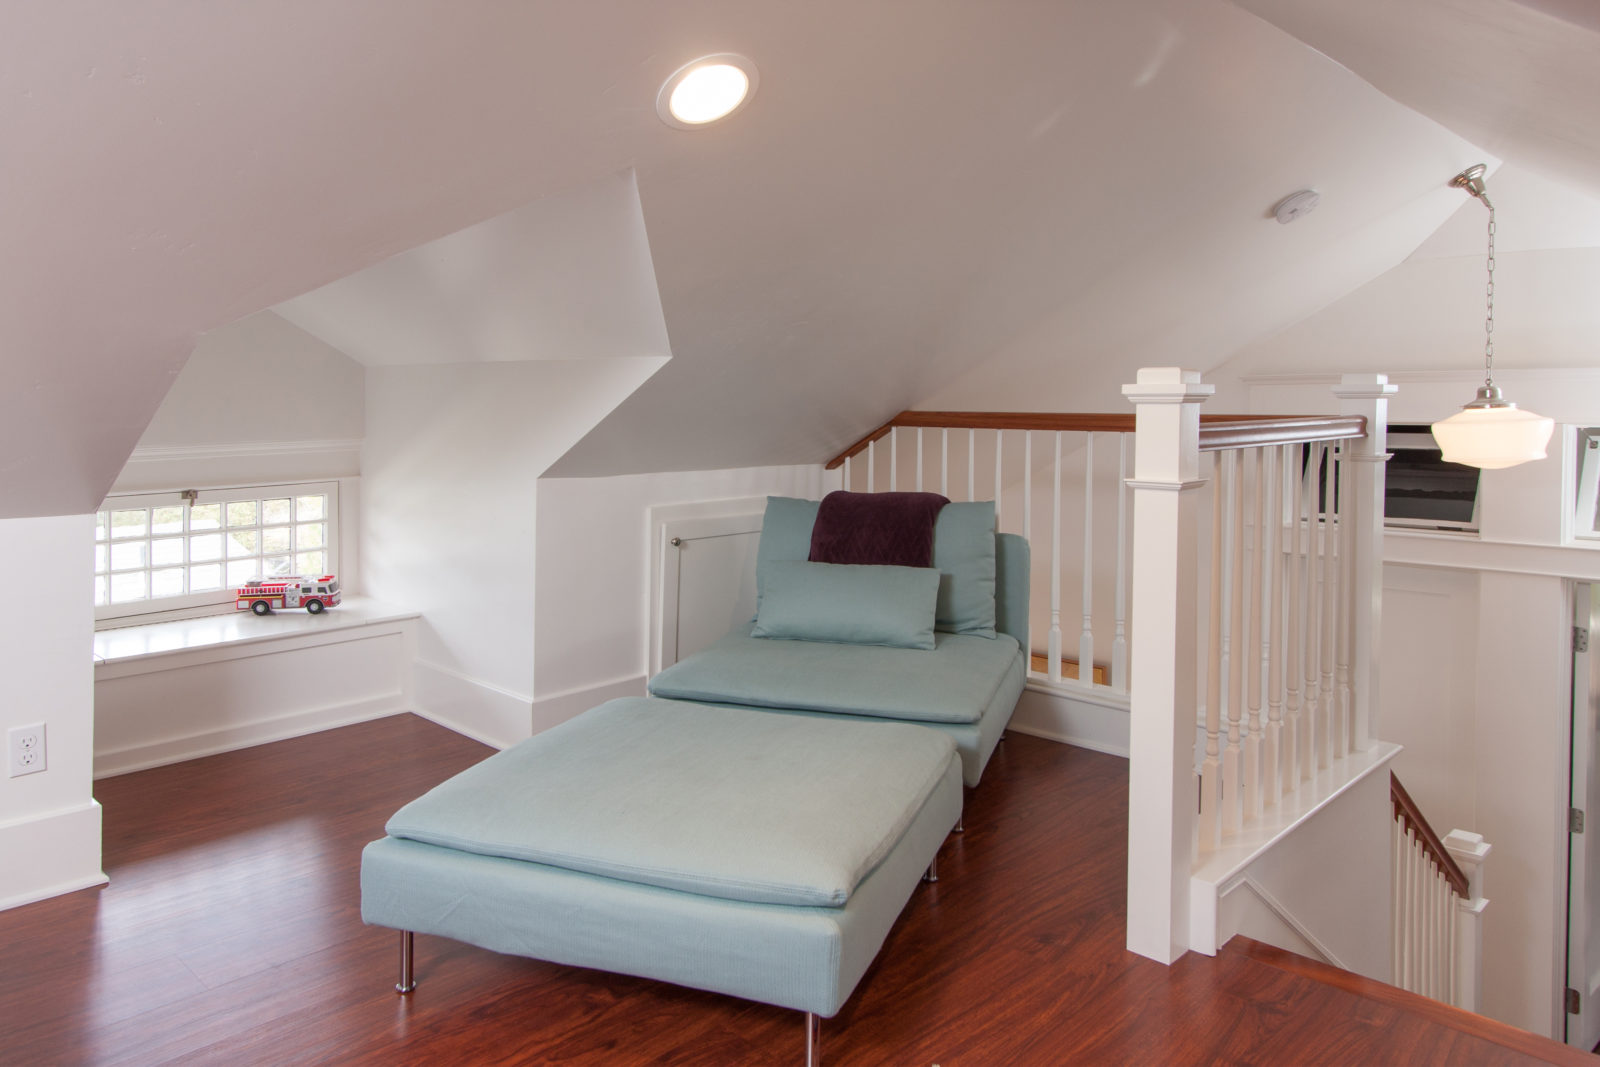 Attic Room With Chaise Lounge